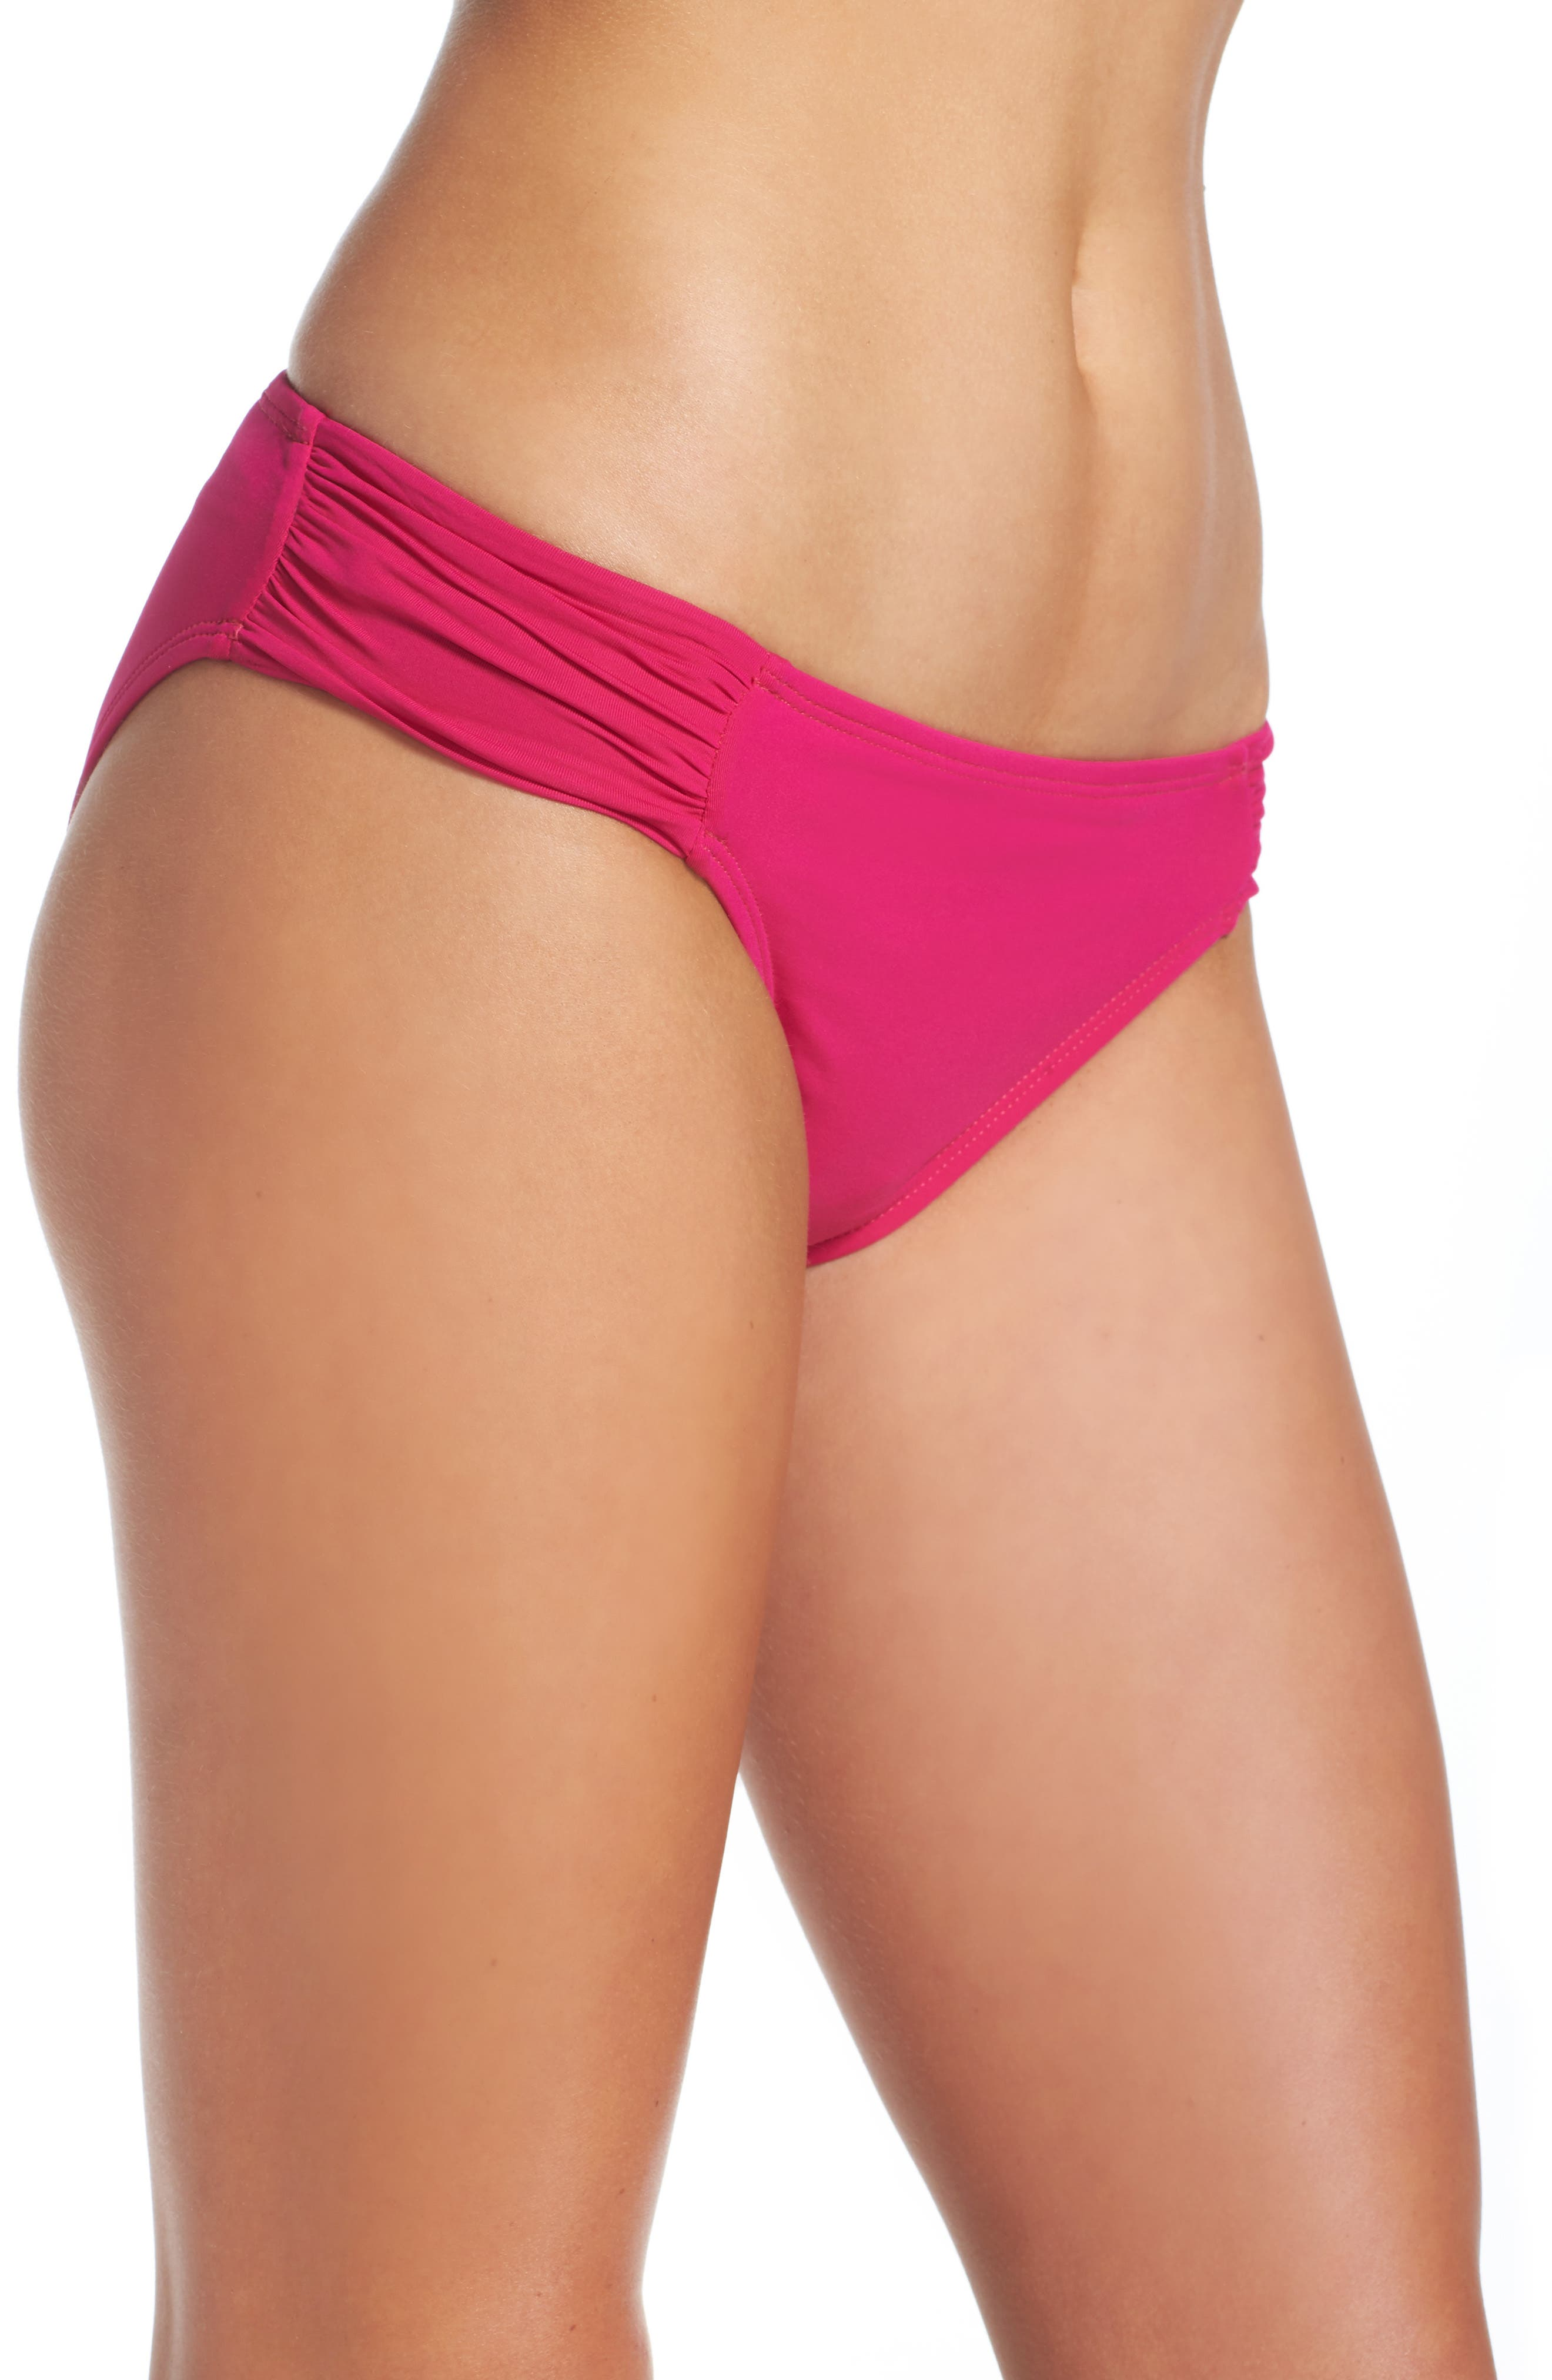 Island Goddess Hipster Bikini Bottoms,                             Alternate thumbnail 50, color,